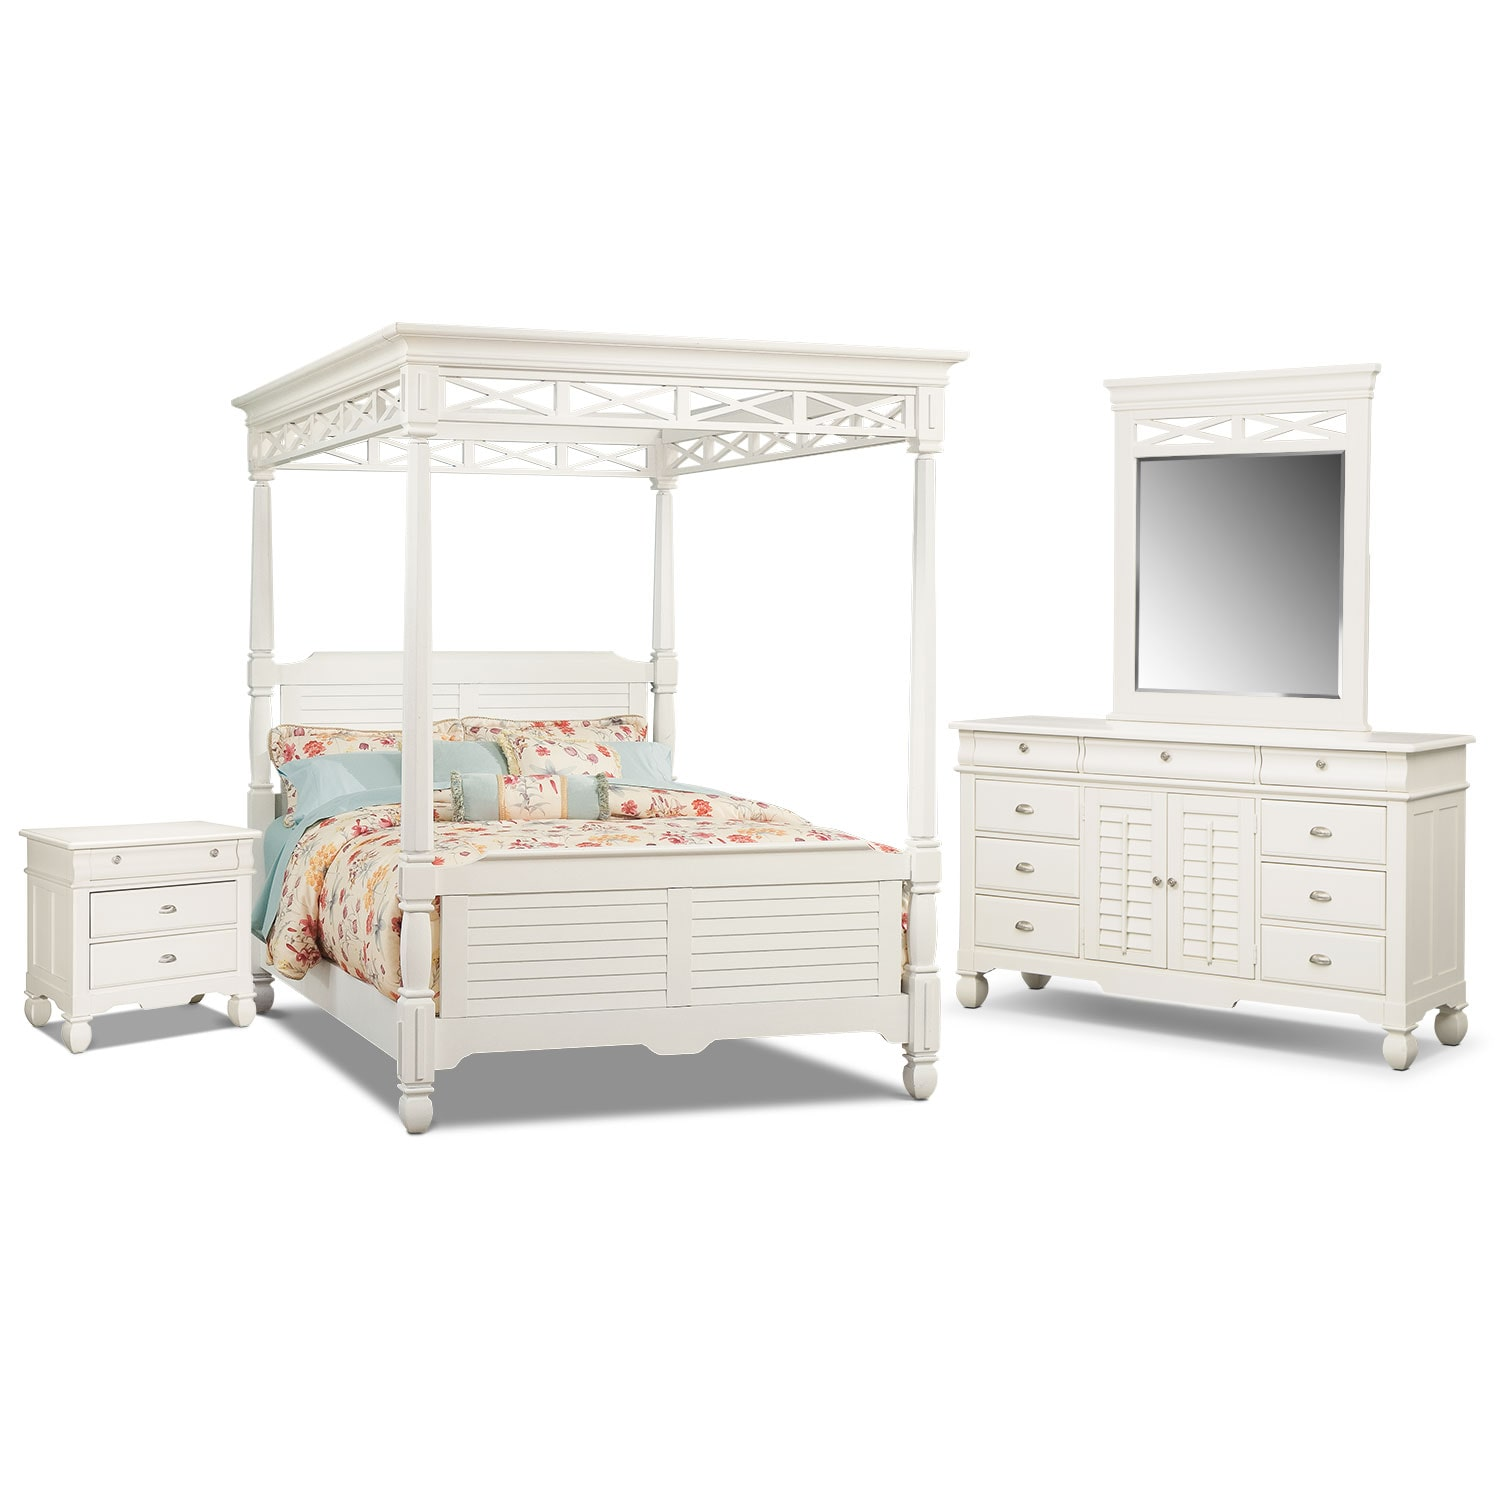 Bedroom Furniture - Plantation Cove 6-Piece King Canopy Bedroom Set - White